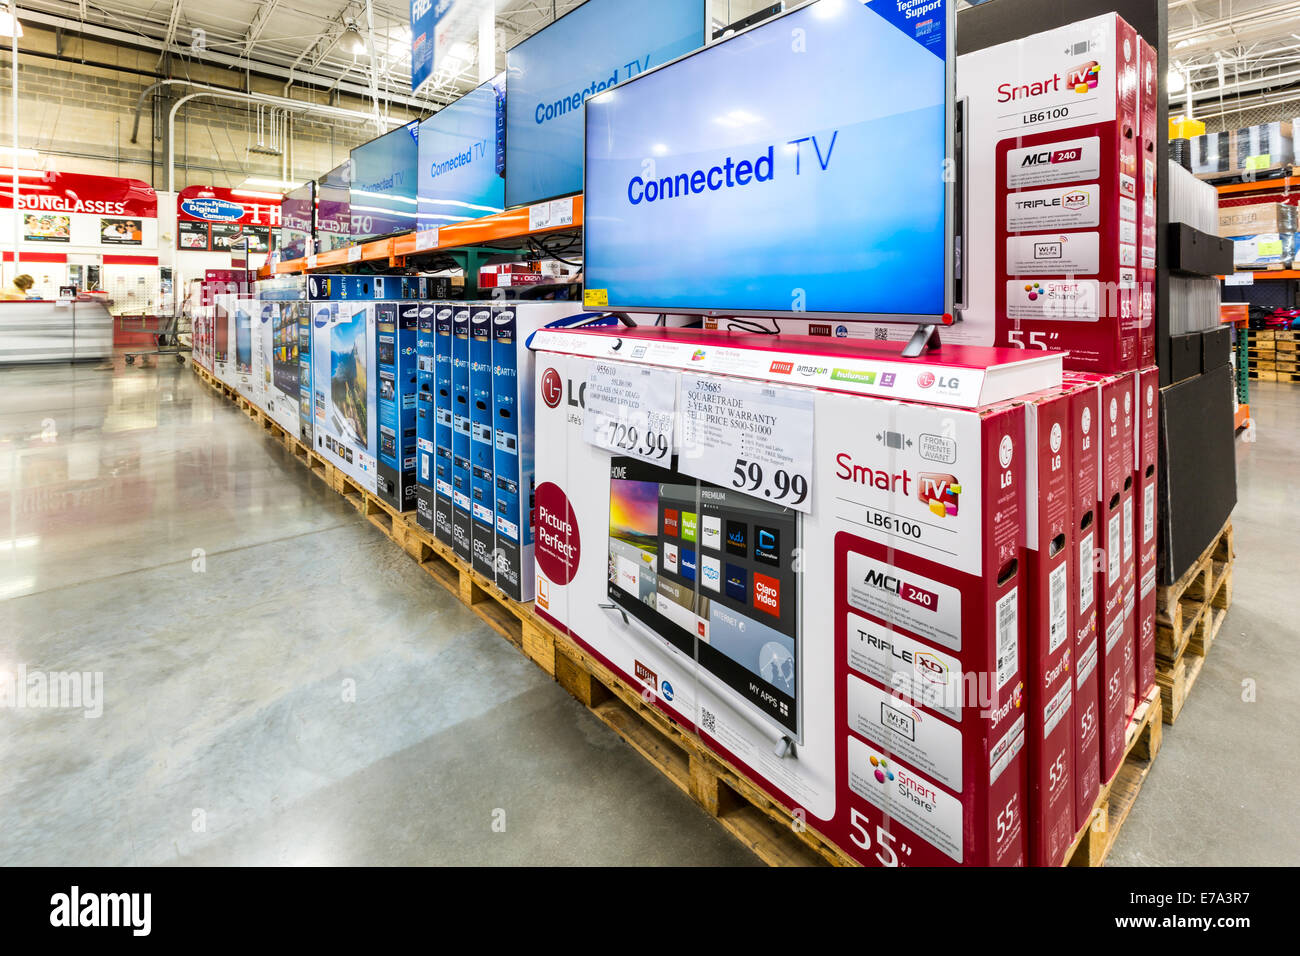 TV aisle in a Costco store. - Stock Image